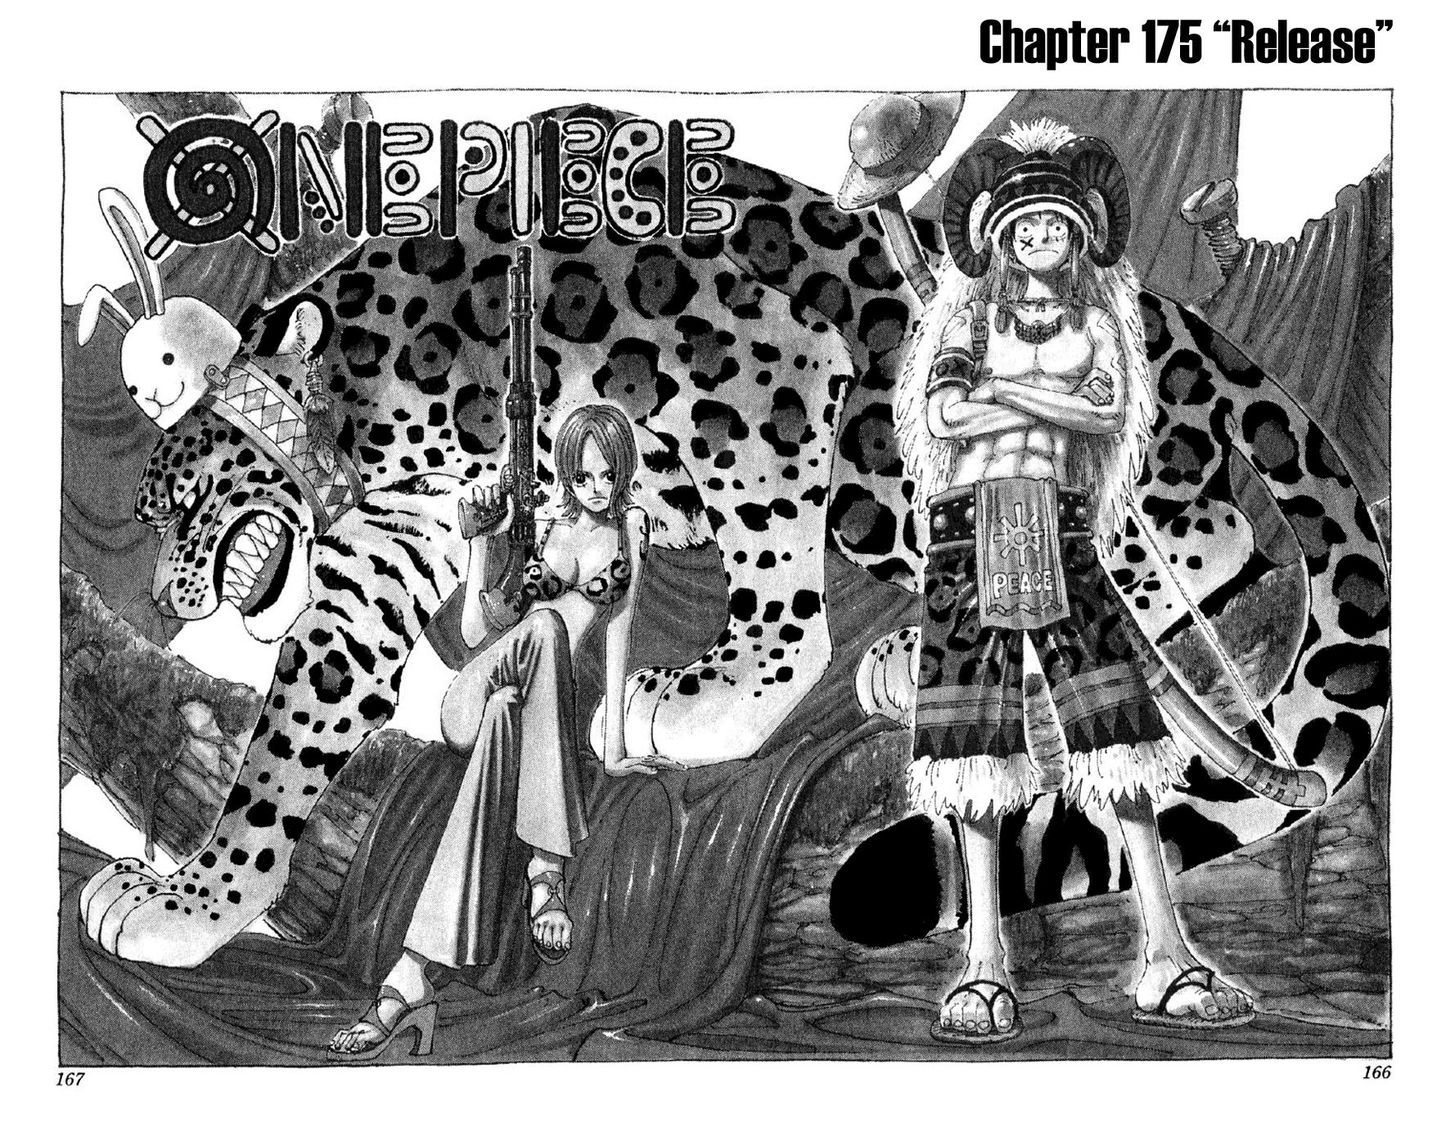 https://im.nineanime.com/comics/pic9/32/96/2523/OnePiece1750438.jpg Page 1